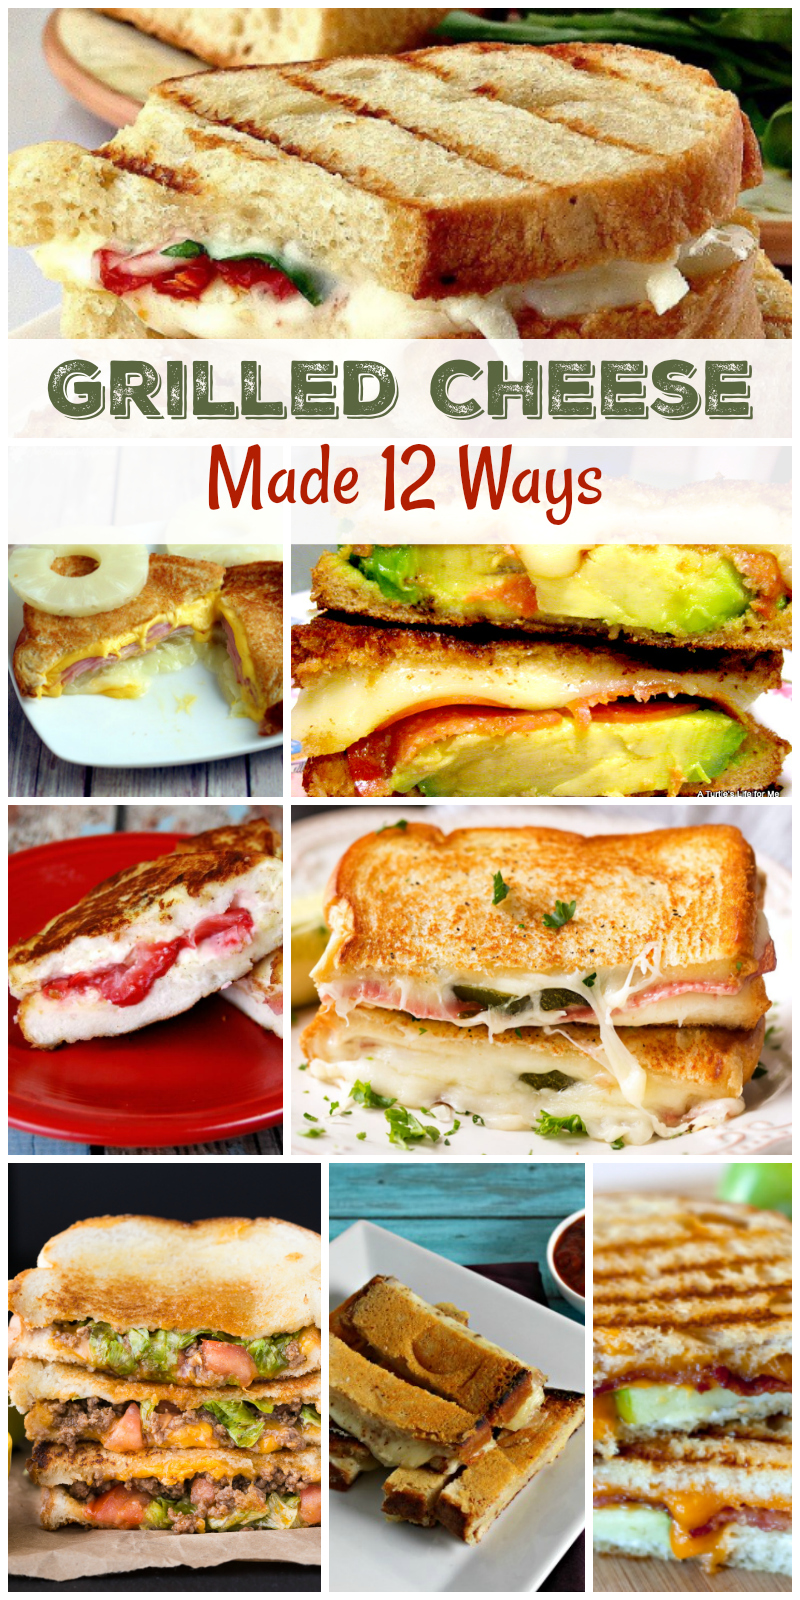 Best Grilled Cheese Recipes- Ahh, Grilled Cheese Sandwiches!  I personally, am always looking for the best Grilled Cheese Sandwiches at restaurants, or finding new Grilled Cheese Recipes or Grilled Cheese Sandwich ideas, to make the best ones. I LOVE Grilled Cheese!! So much so, that I've rounded up some awesome and unique ways to up your Grilled Cheese game. Whether you're making it for breakfast, lunch, or dinner, (there's even a dessert one in here) you're sure to find a new awesome creation! Just click on the blue link below a picture for the recipe!